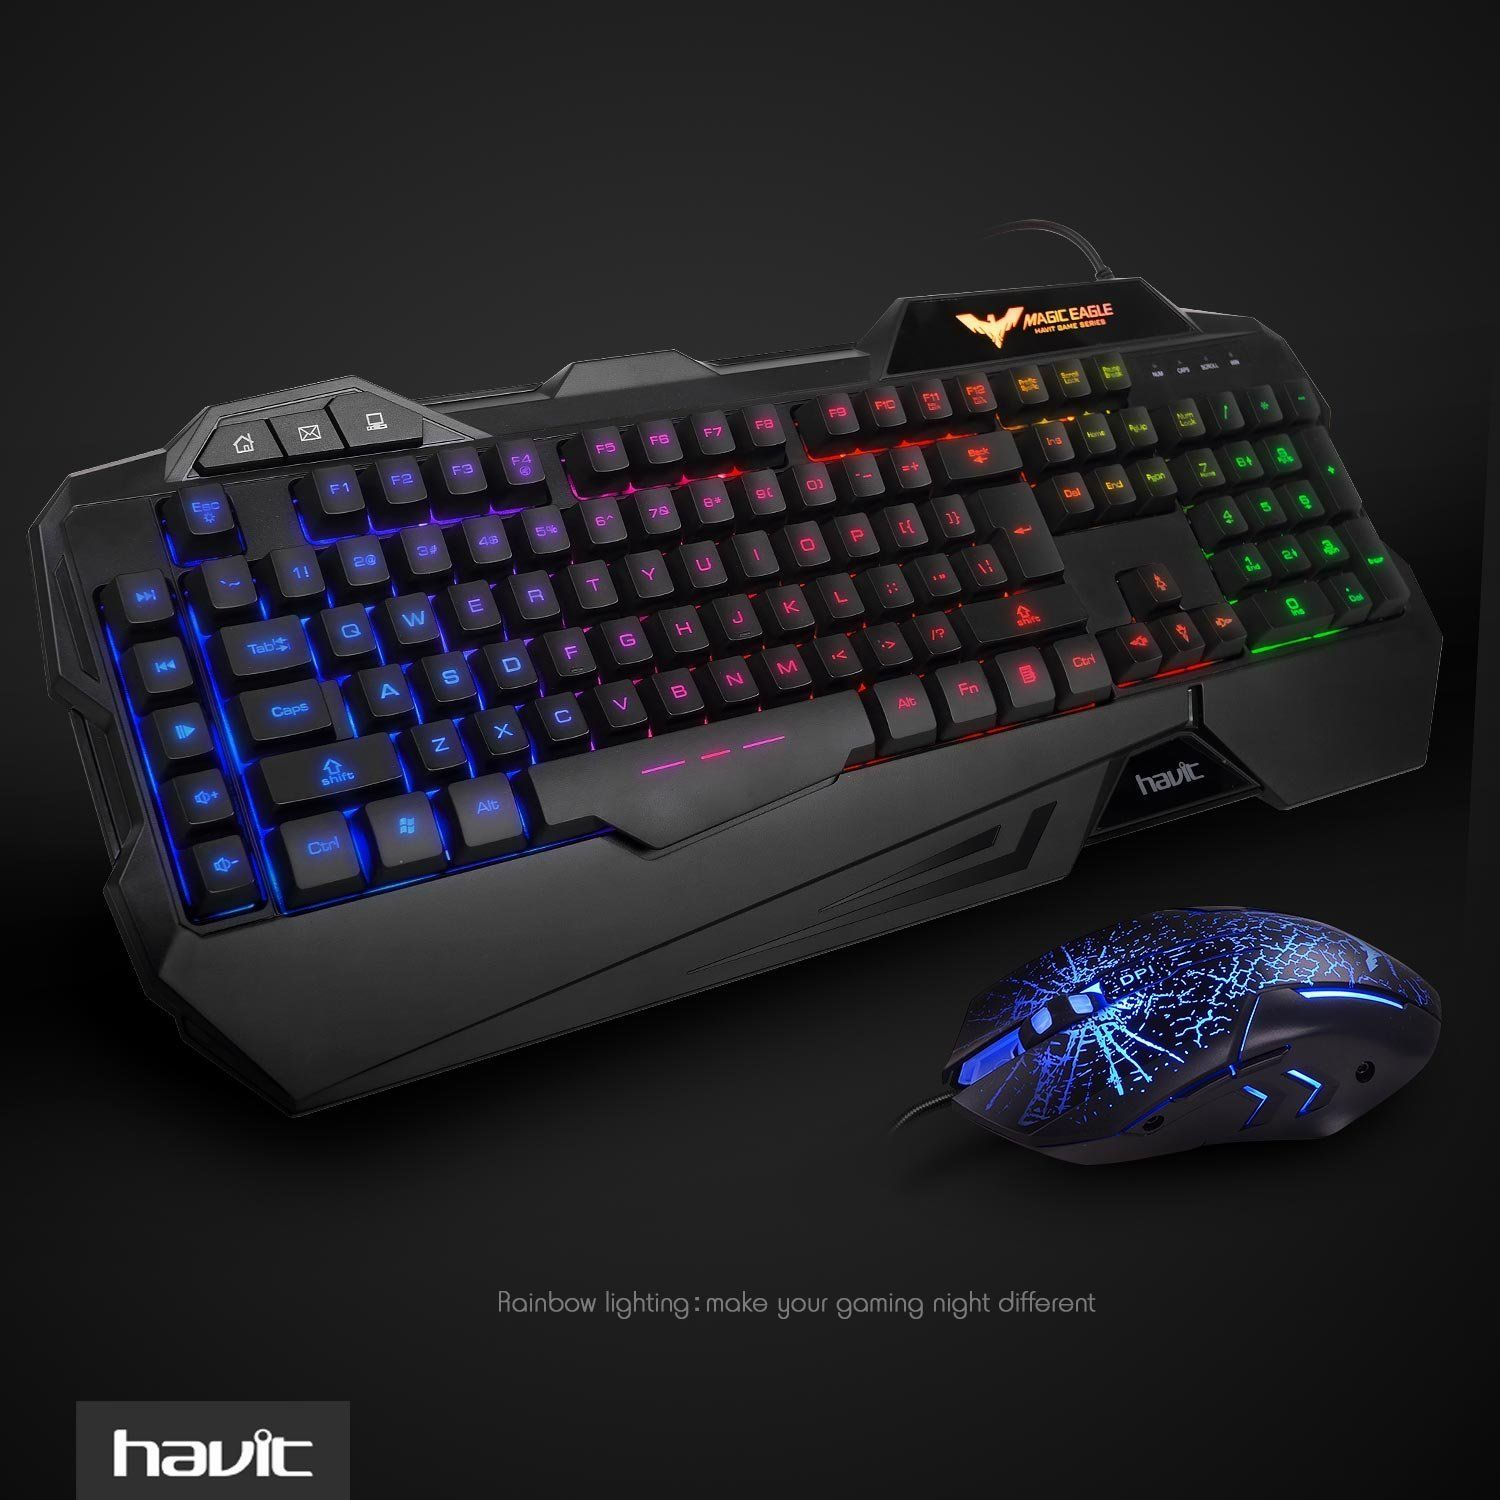 2a1104336c4 HAVIT Rainbow Backlit Wired Gaming Keyboard Mouse Combo•Rainbow of LED  Backlit can switch among medium light,high light,breath mode and turn off  by pressing ...